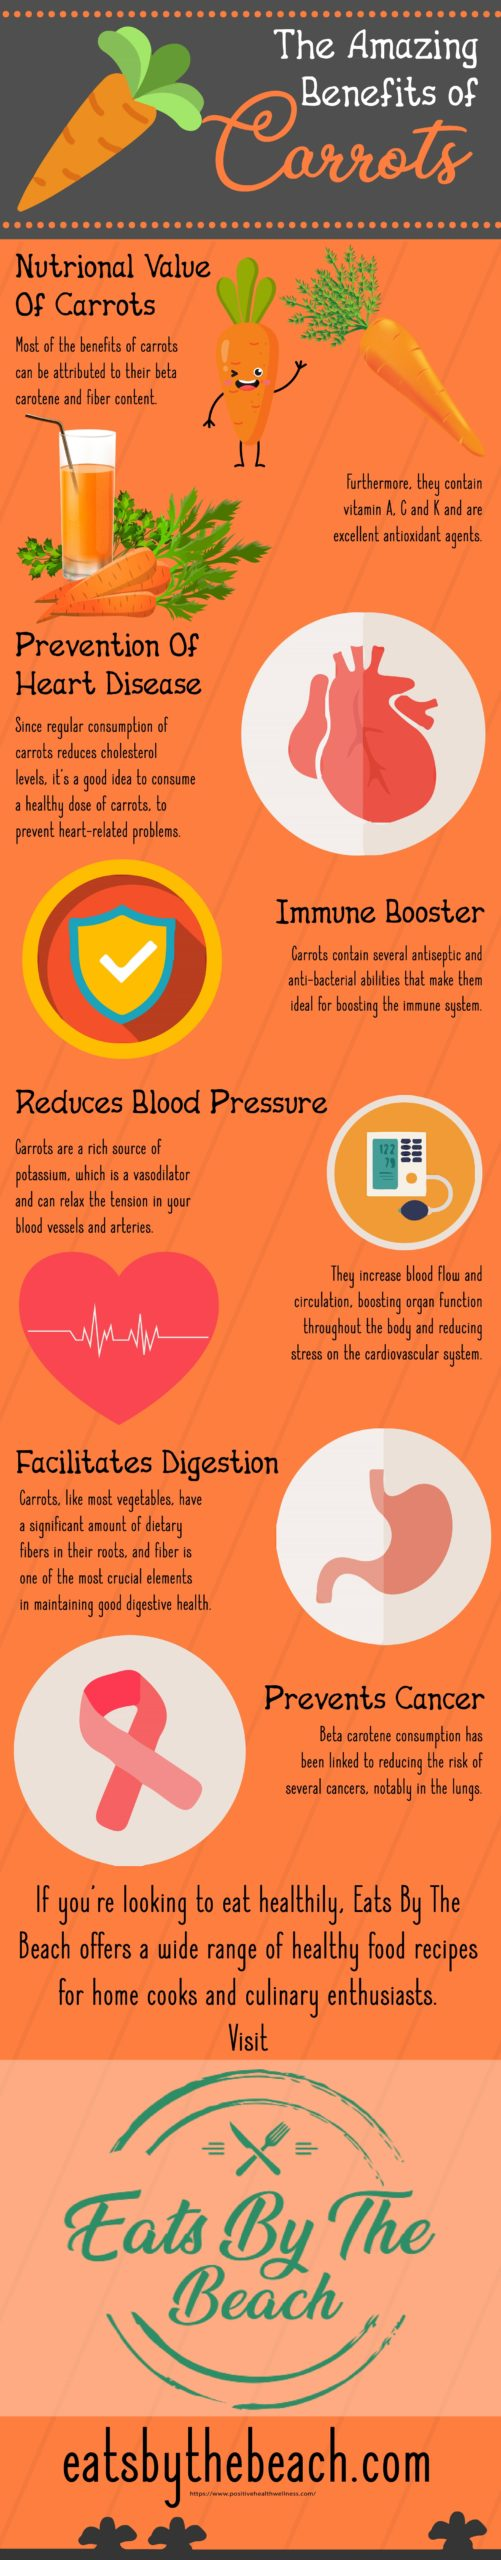 The amazing benefits of carrots